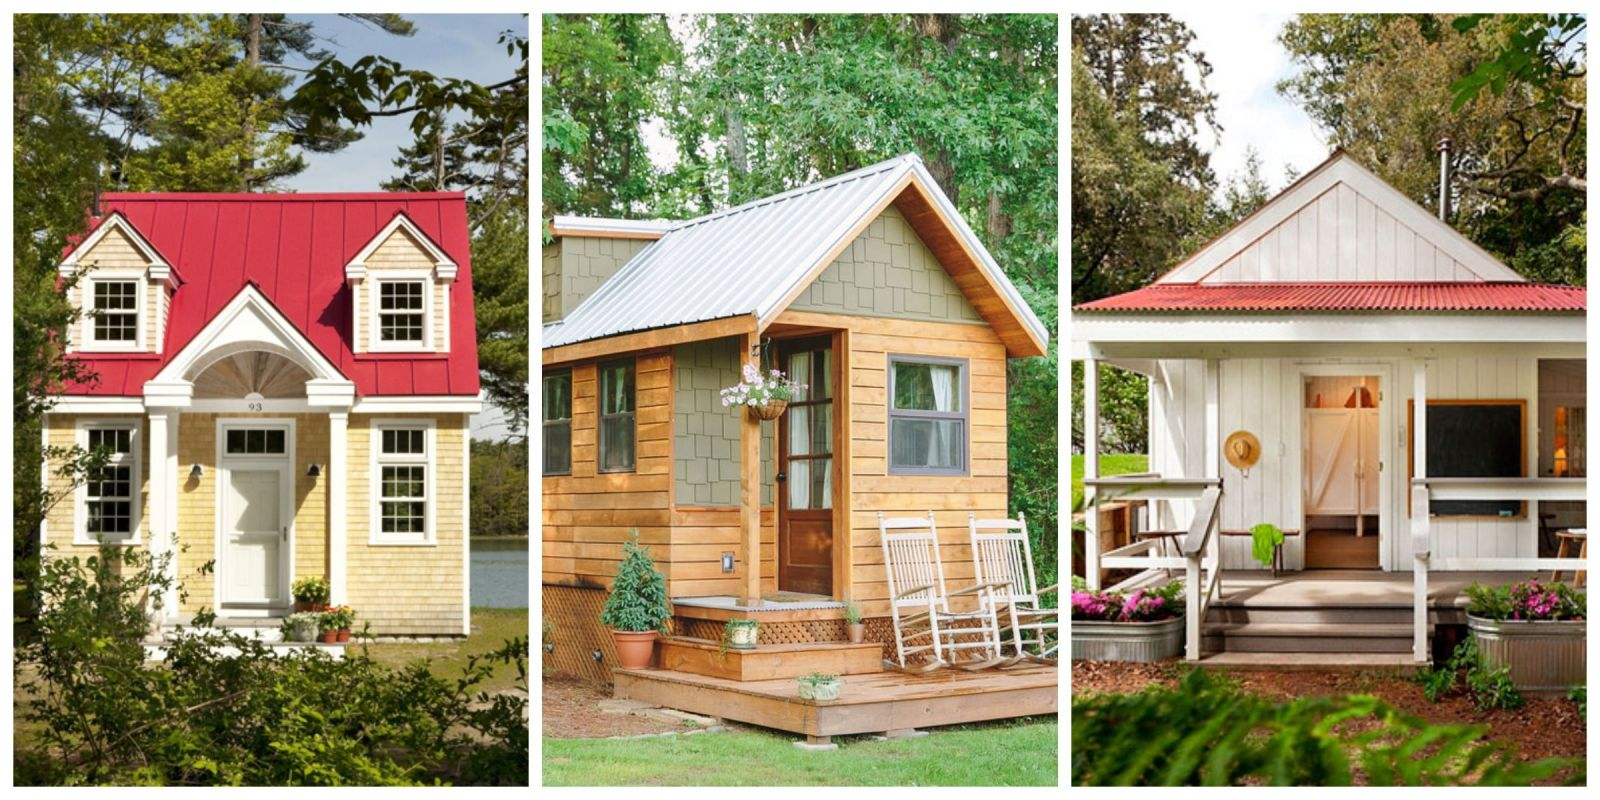 60 Best iny Houses 2017 - Small House Pictures & Plans - ^